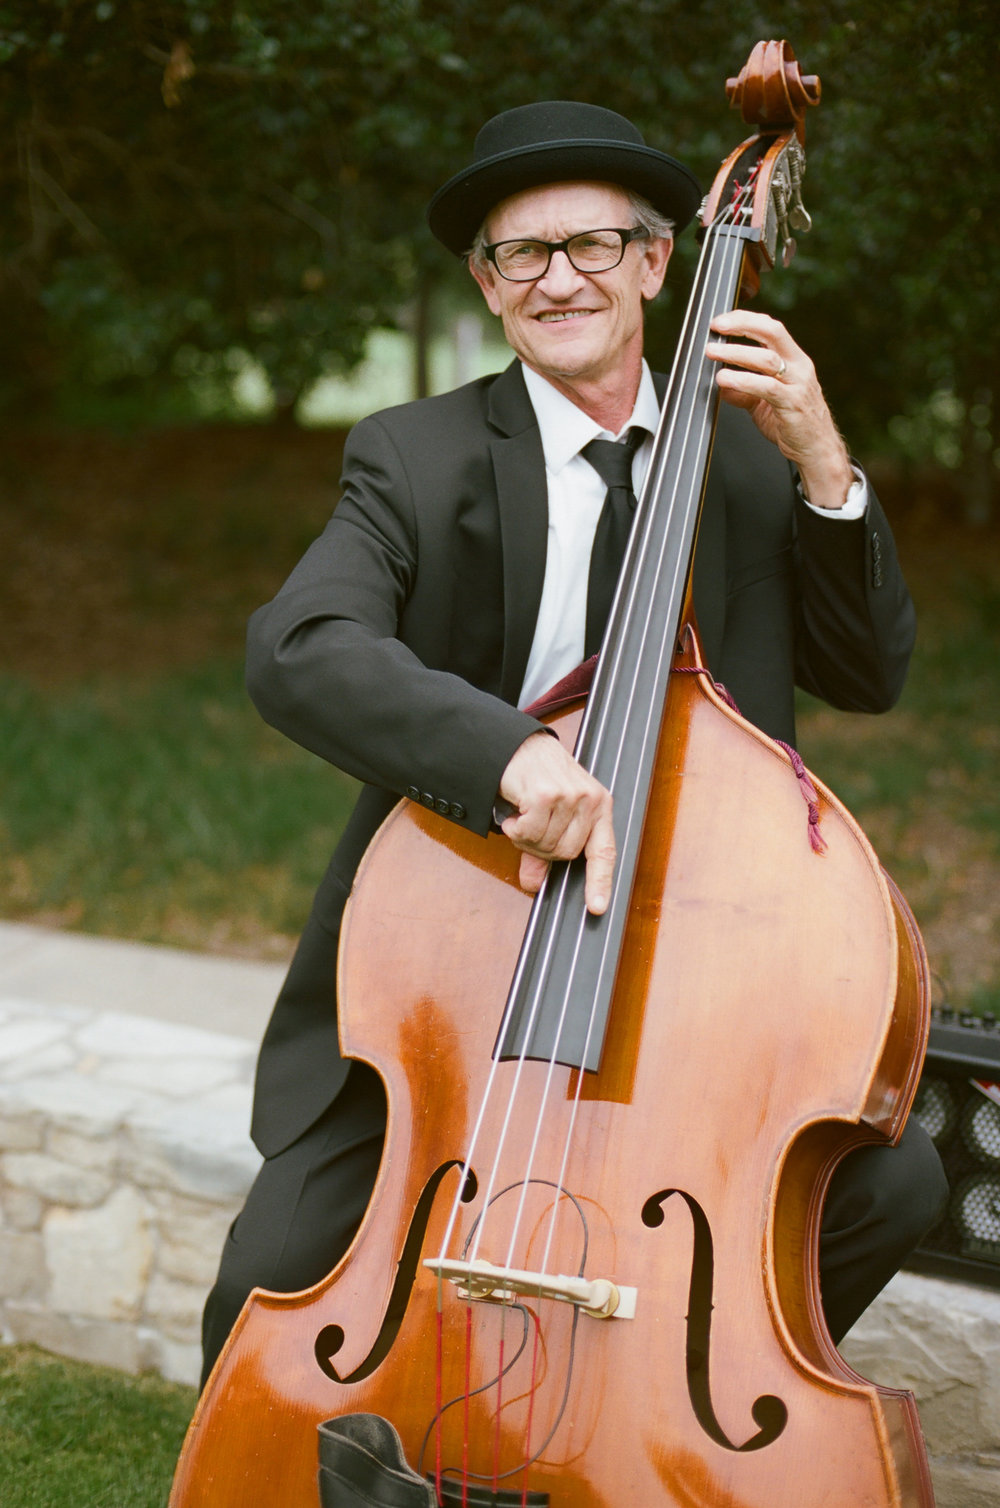 15-bass-player-wedding.jpg